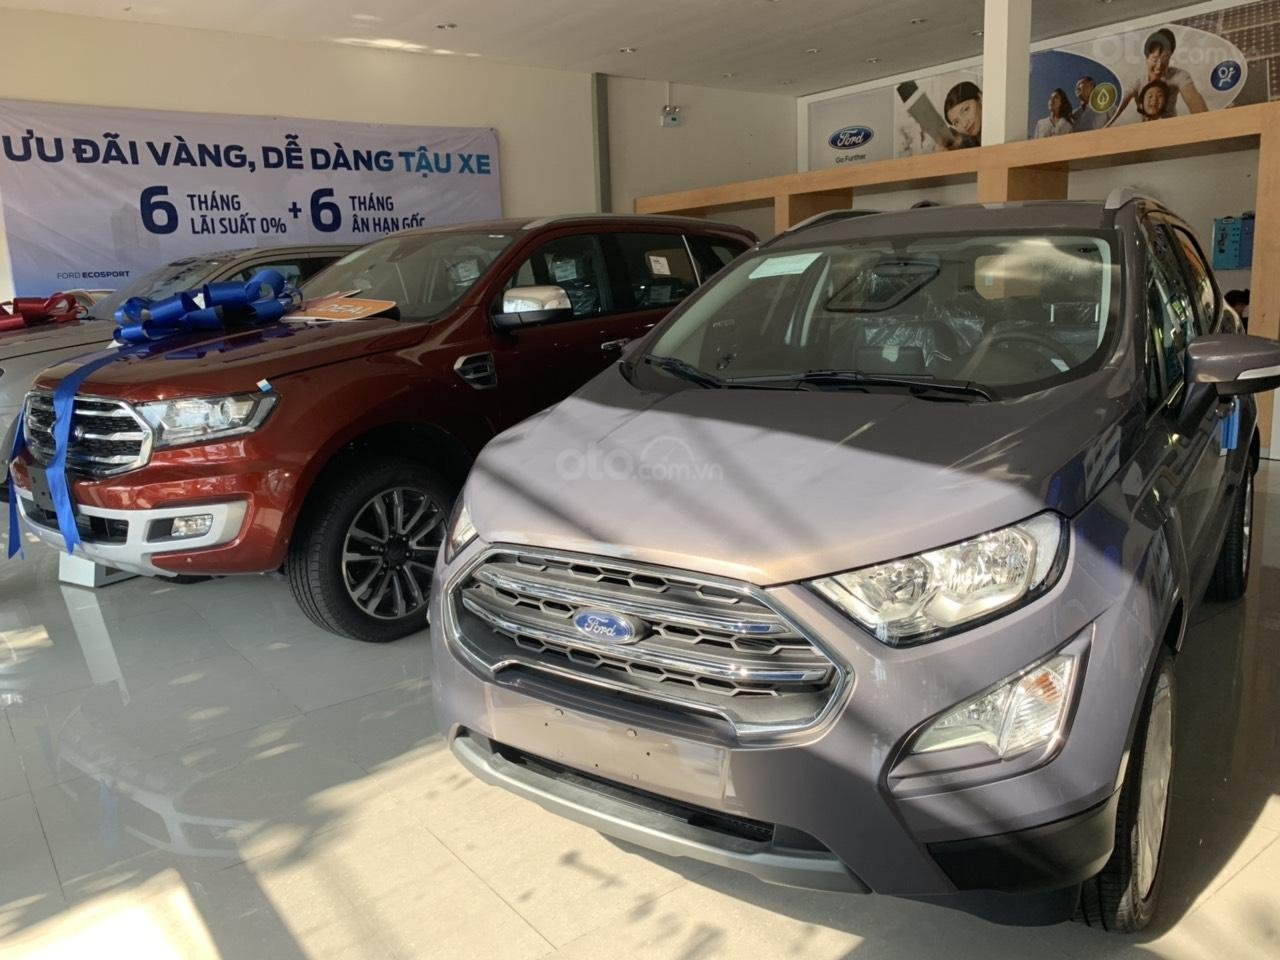 City Ford Showroom Vũng Tàu (6)